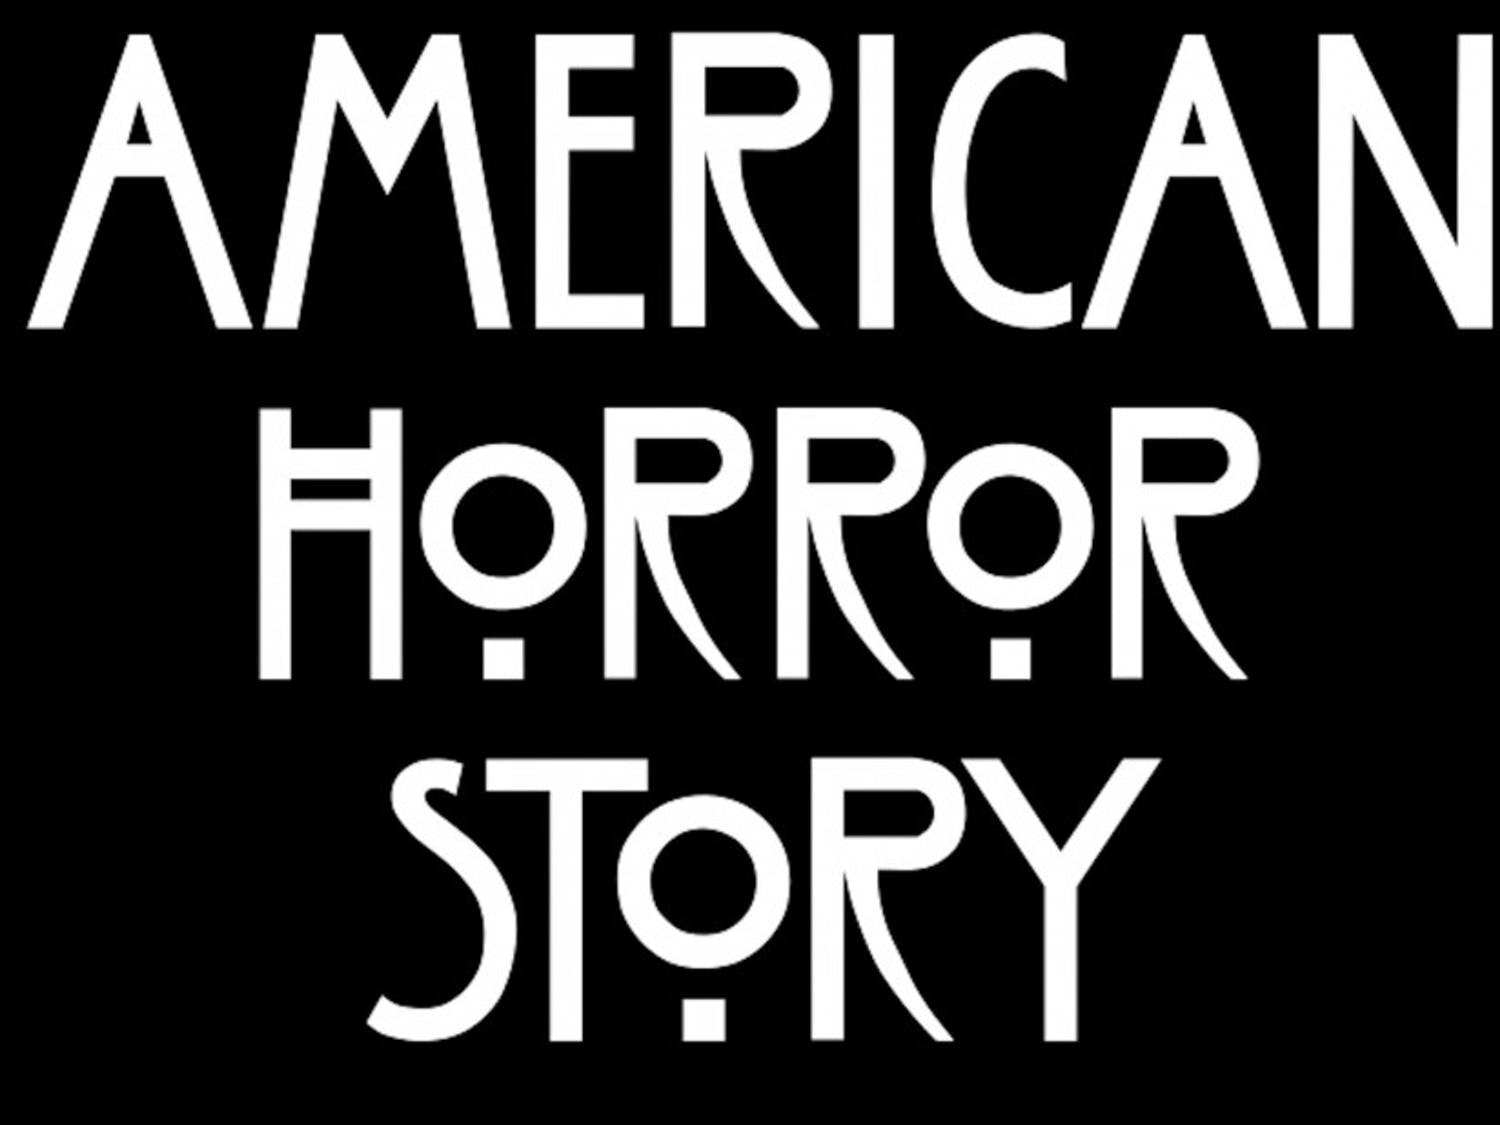 """The new season of """"American Horror Story"""" premiered Sept. 5 on FX with a politically-charged premiere."""